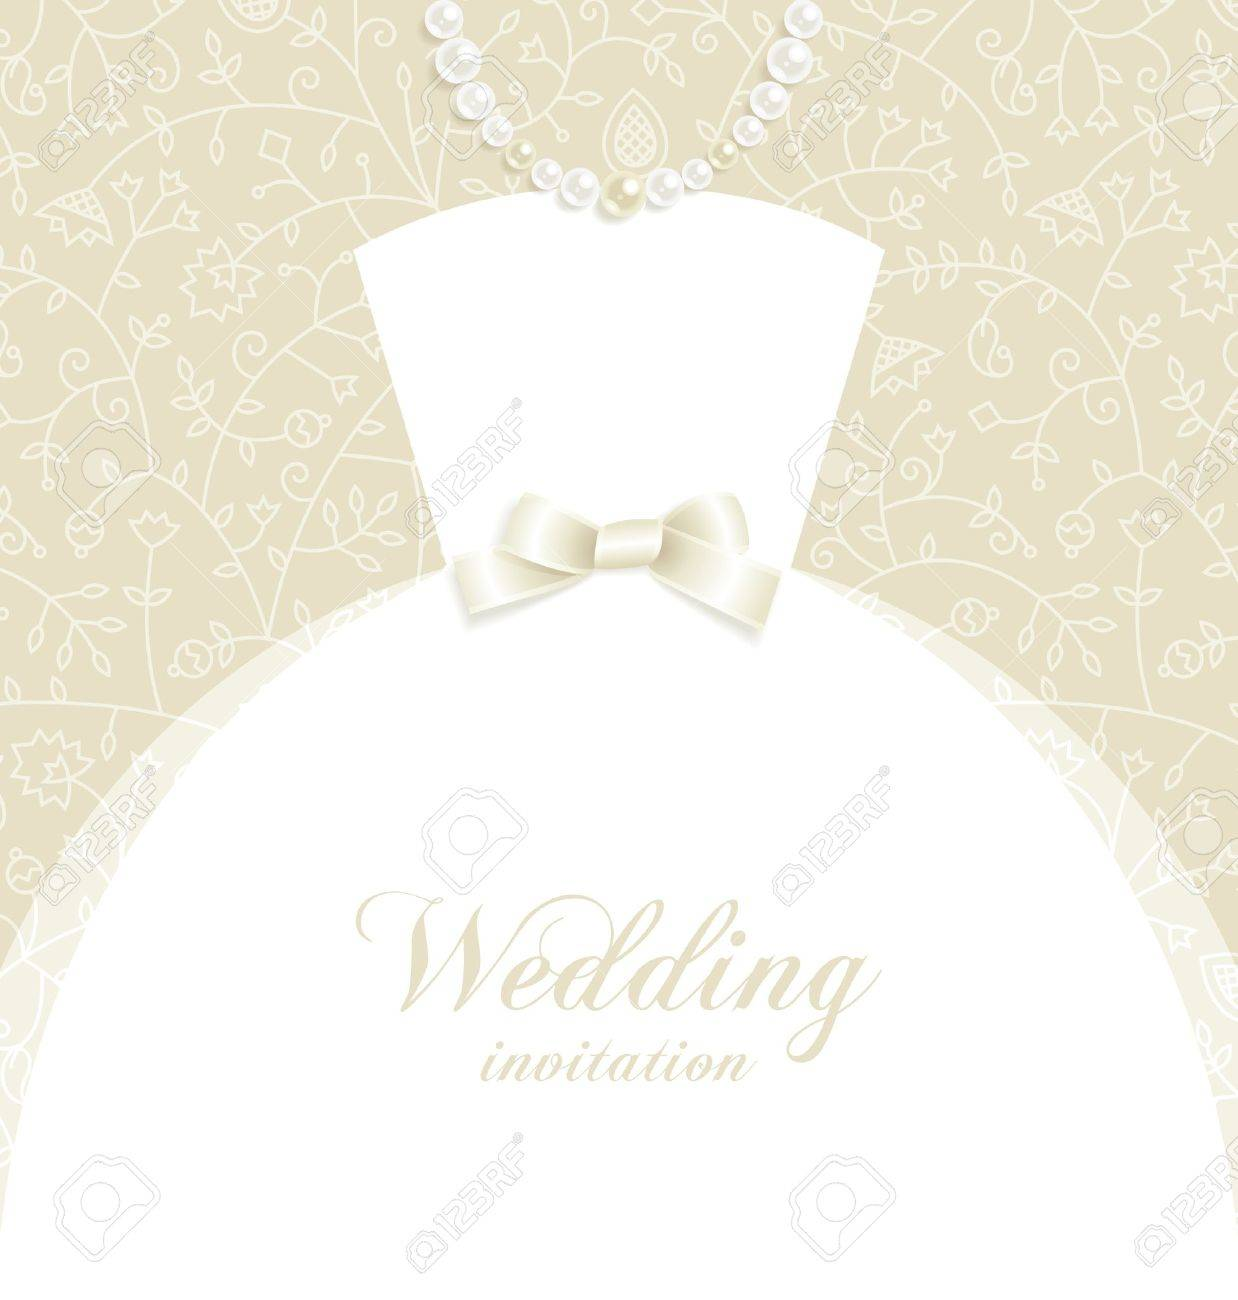 Wedding background with bridal dress silhouette and decorative elements Stock Vector - 9719812